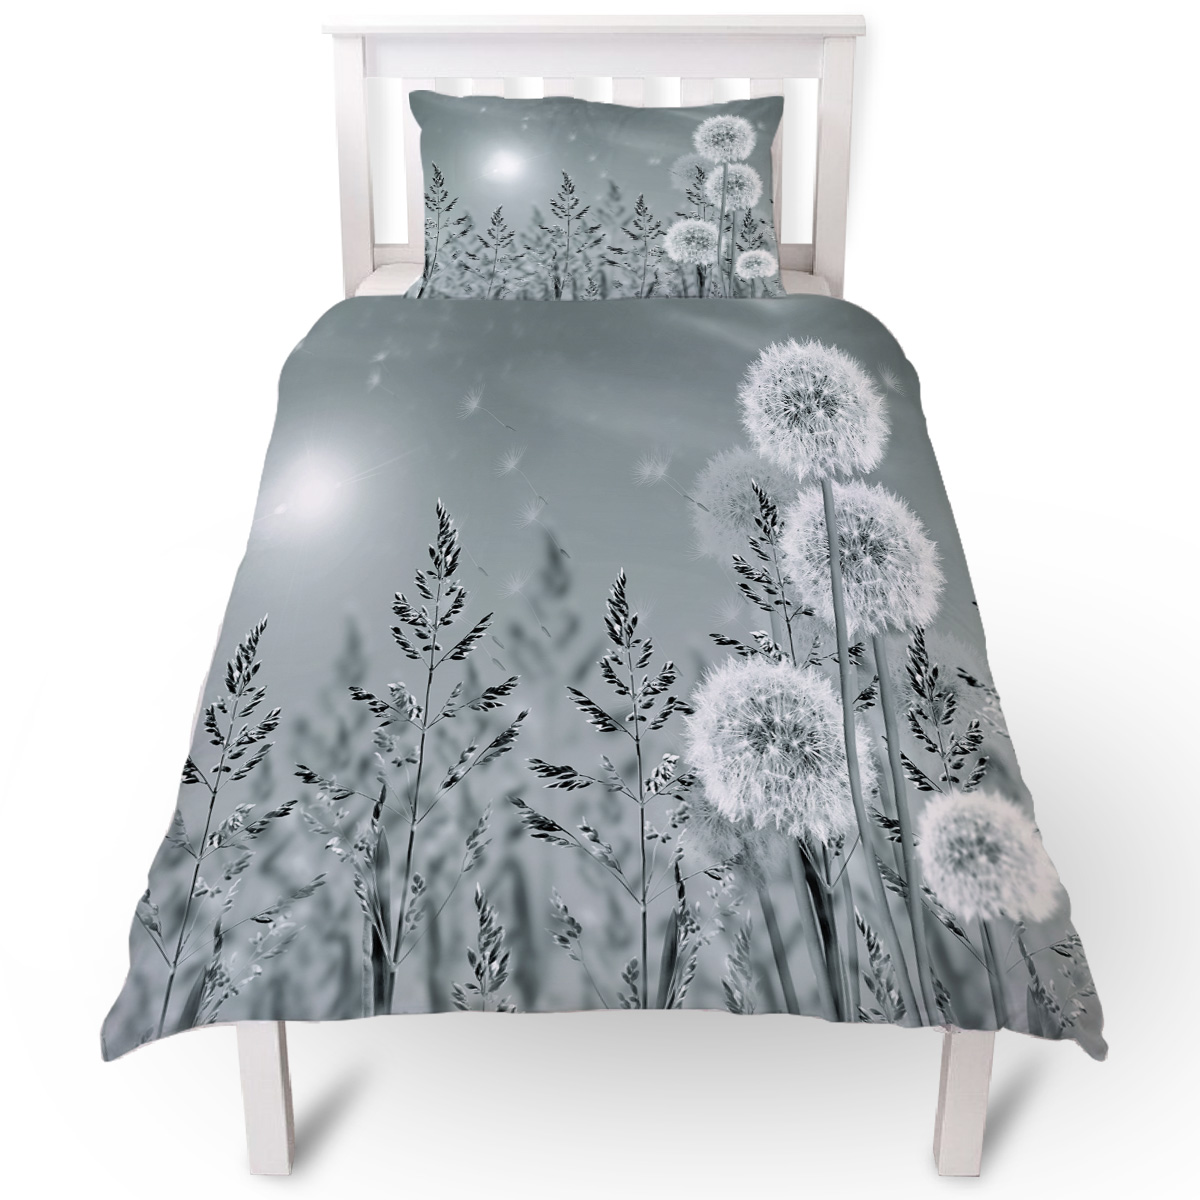 Butterfly Embroidered Floral Quilt Cover Bedding Set Single Duvet Cover Set